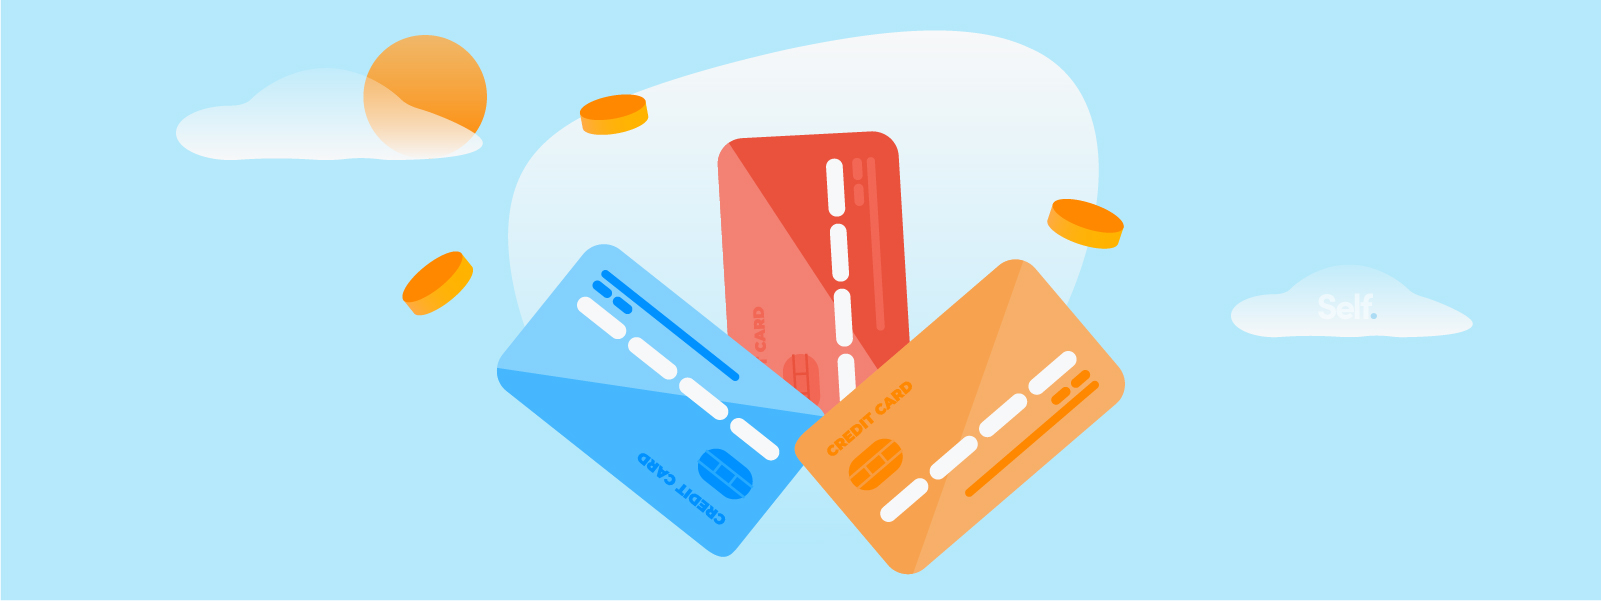 Choosing the right credit card for you.